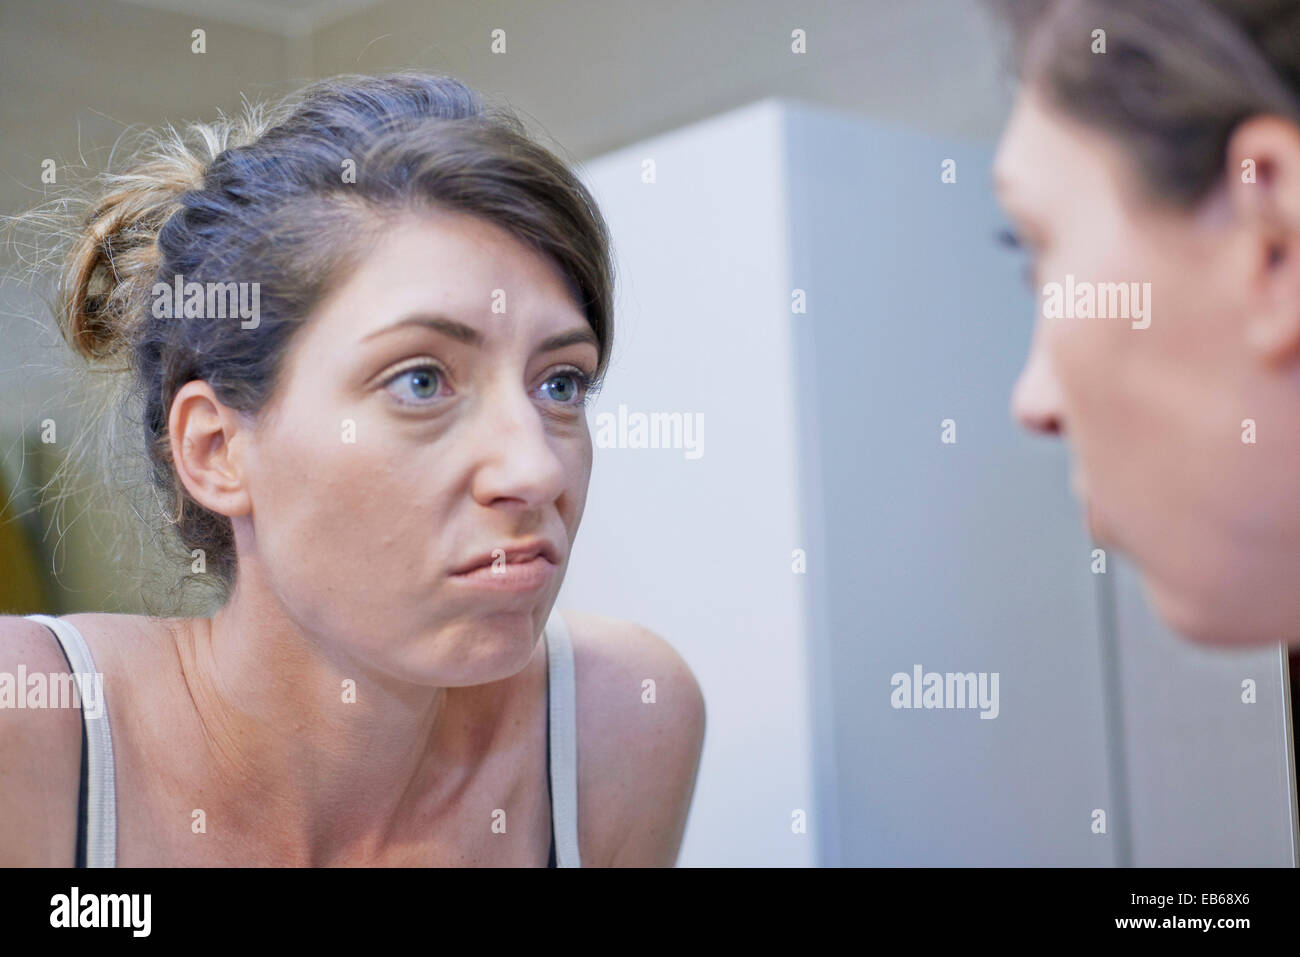 WOMAN WITH MIRROR - Stock Image